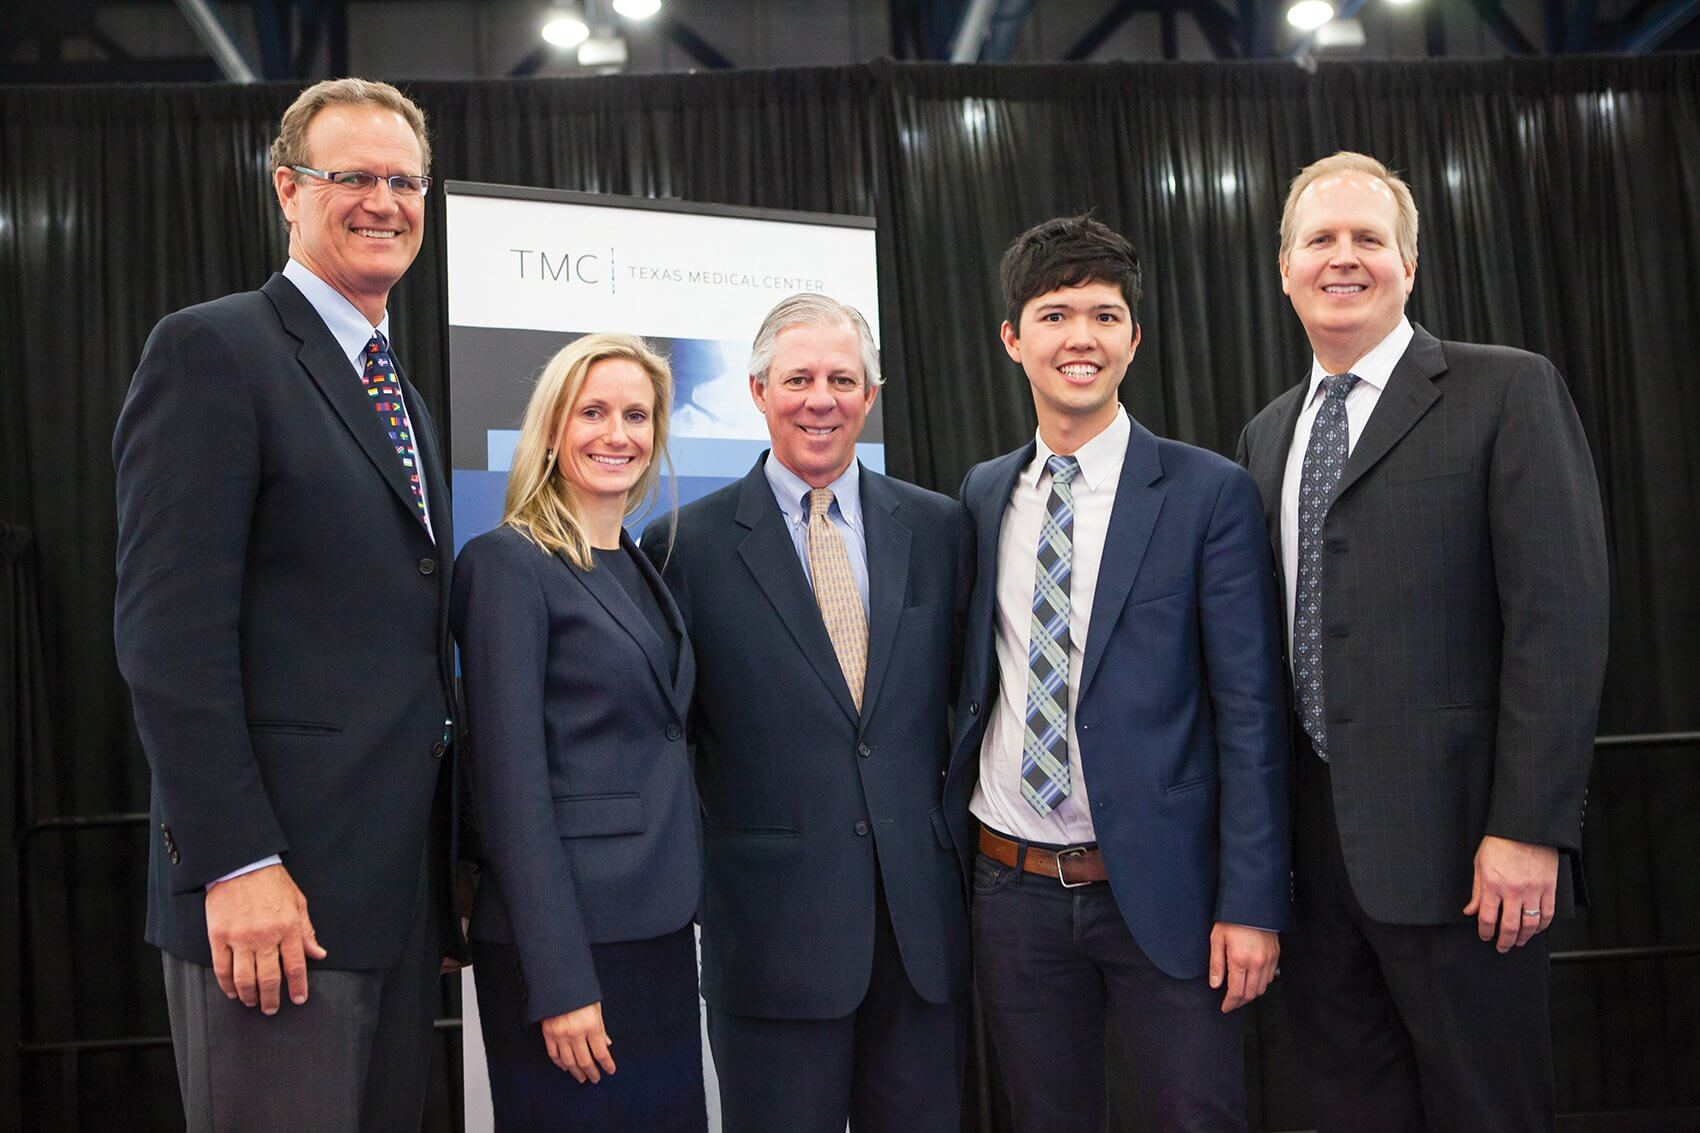 Winners of the TMCx pitch competition pose with Dr. Robbins.